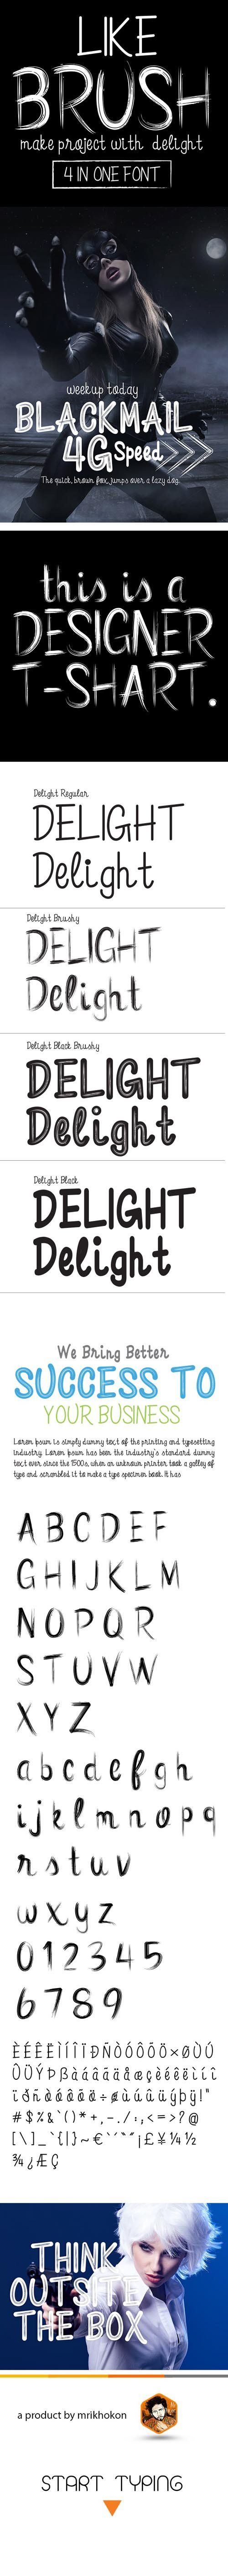 Delight Font 19662463